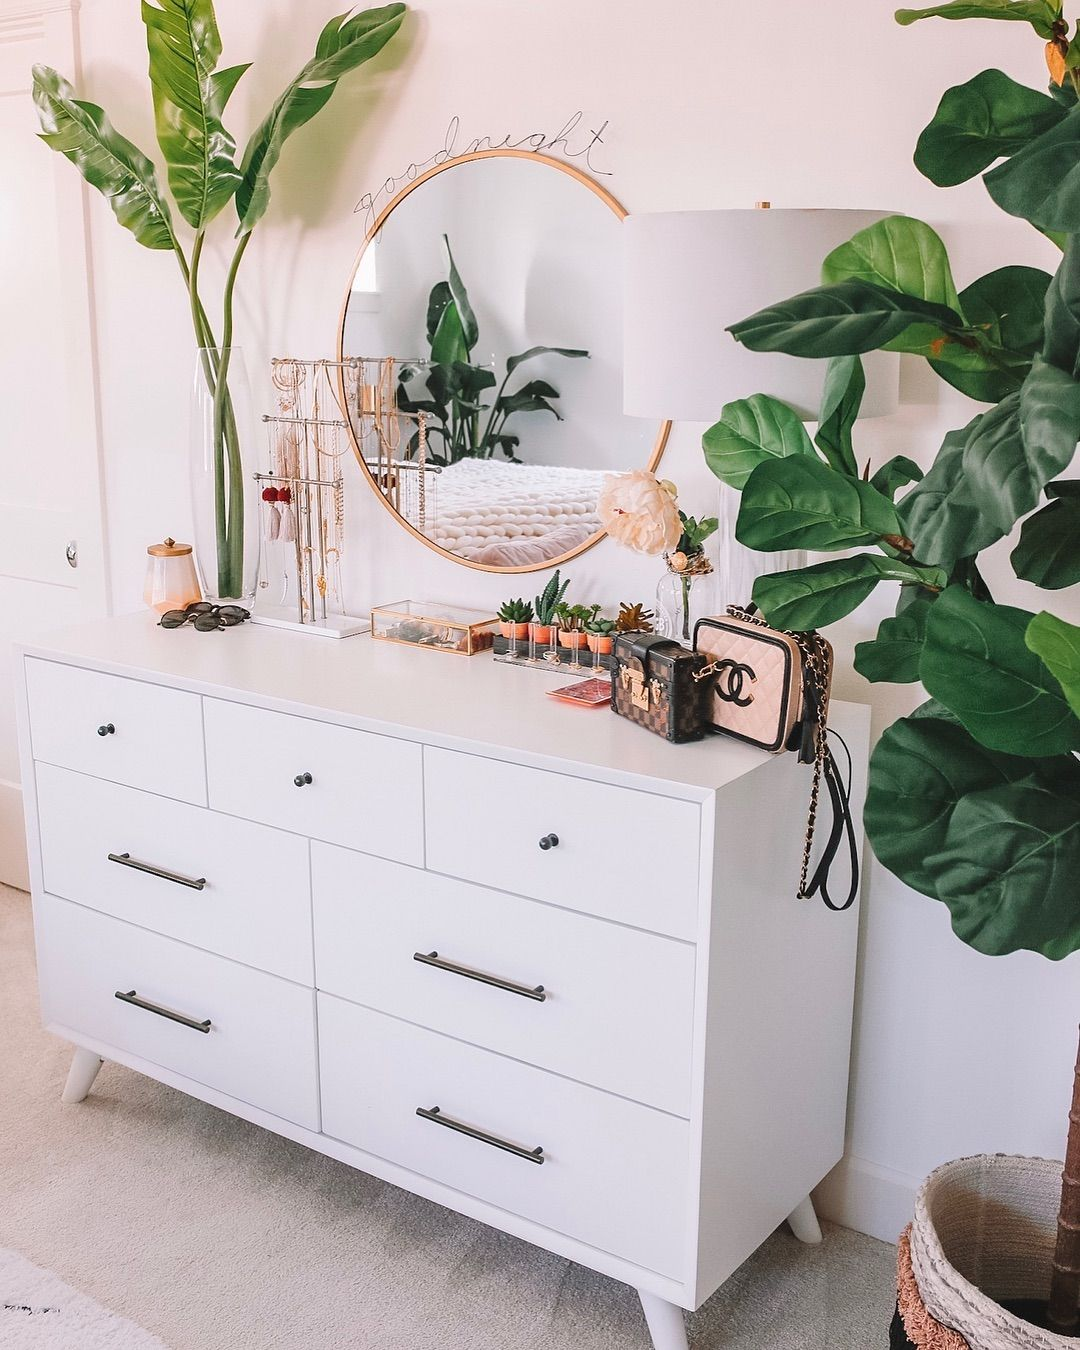 """Photo of Sabrina Tan on Instagram: """"@gypsytanhome I'm so excited to get my bedroom/closet/bathroom organized this week! I have a bad case of the organization bug! You can't…"""""""